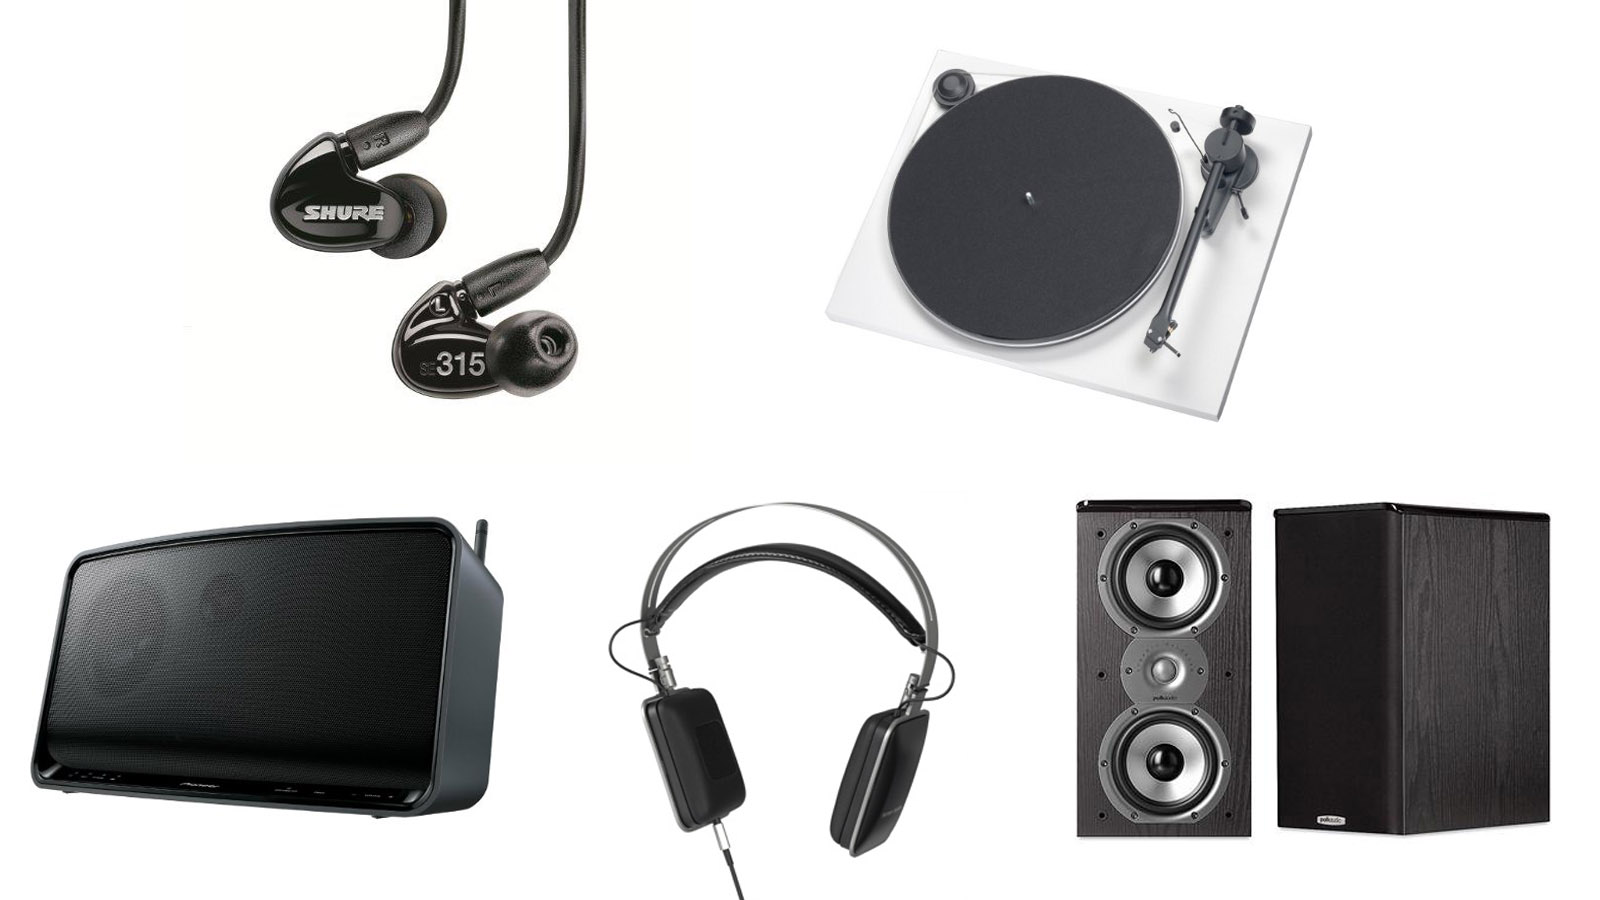 Gift Guide: Sweet-Sounding Gifts For A Music Lover's Sonic Snobbery